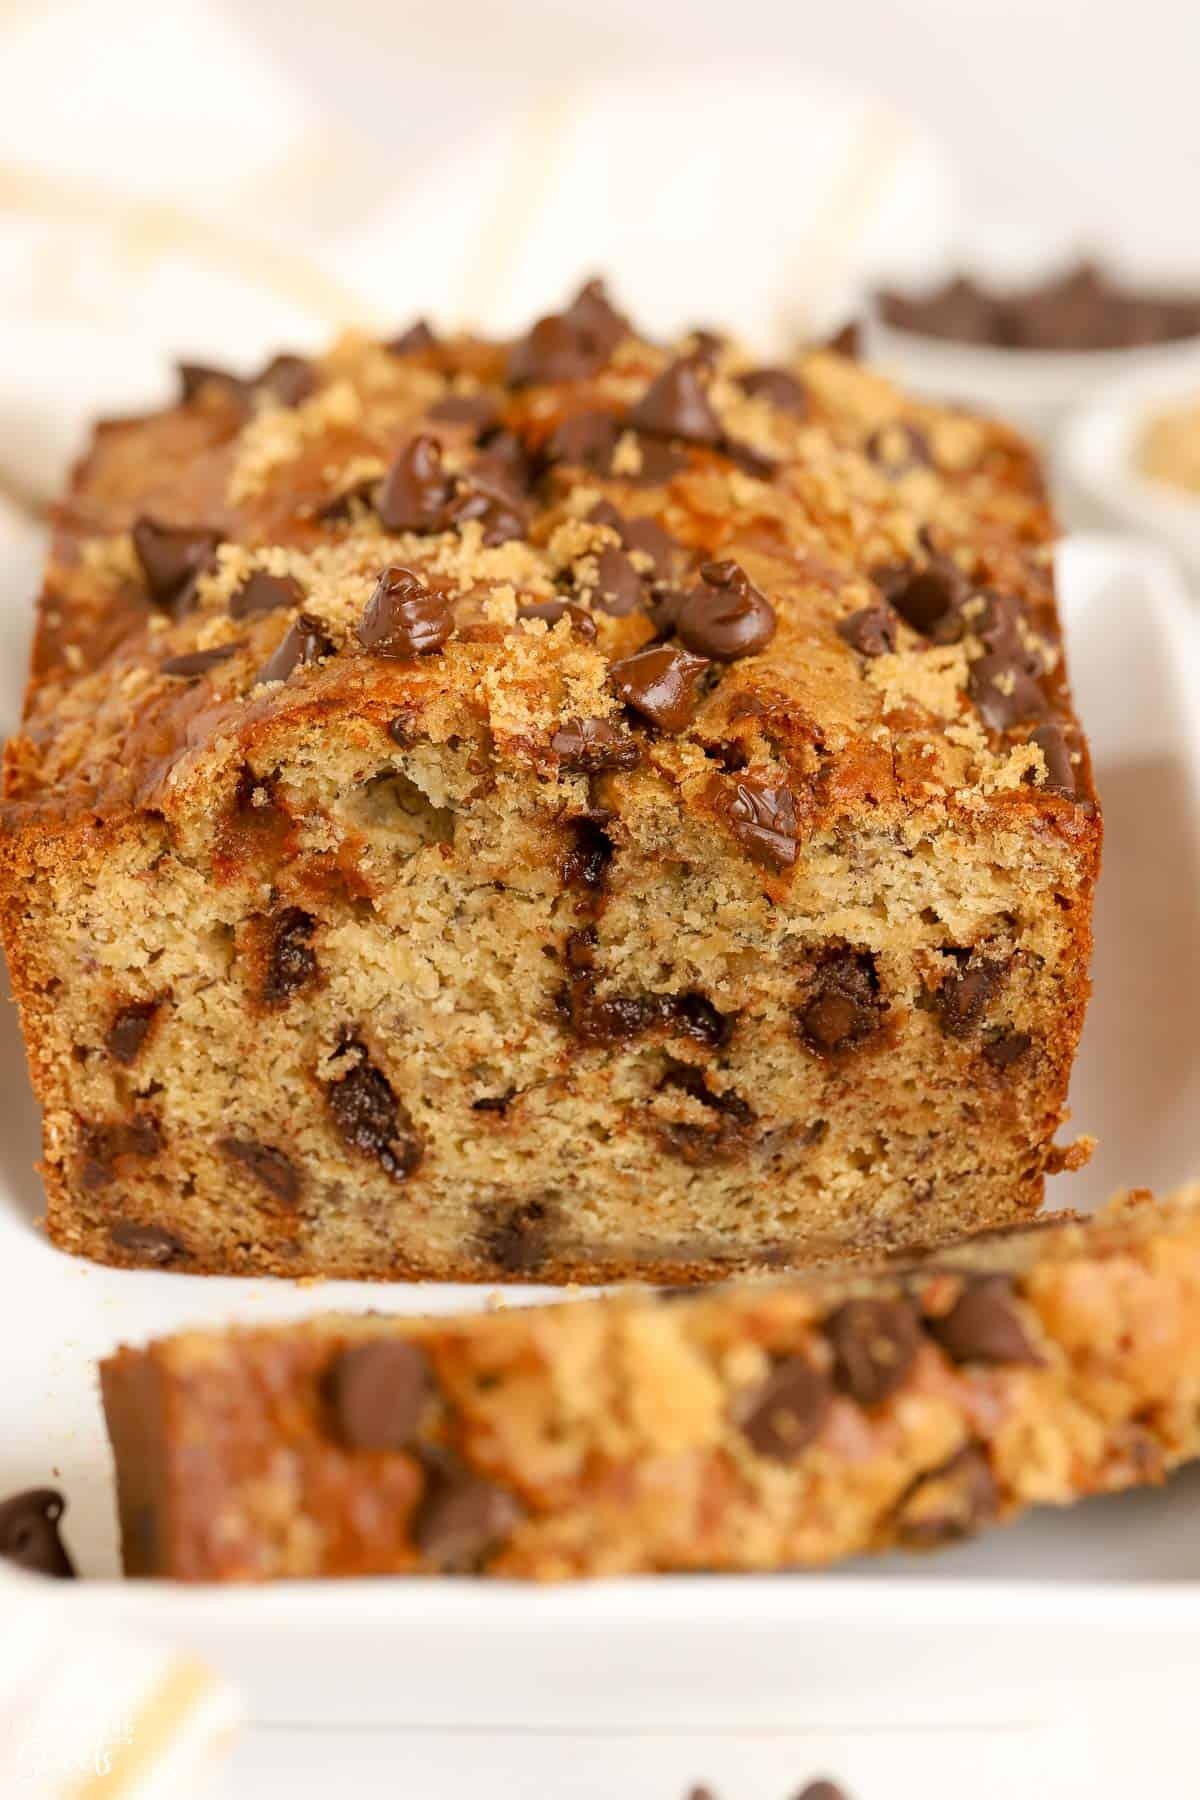 Closeup of a loaf of chocolate chip banana bread on a white plate.